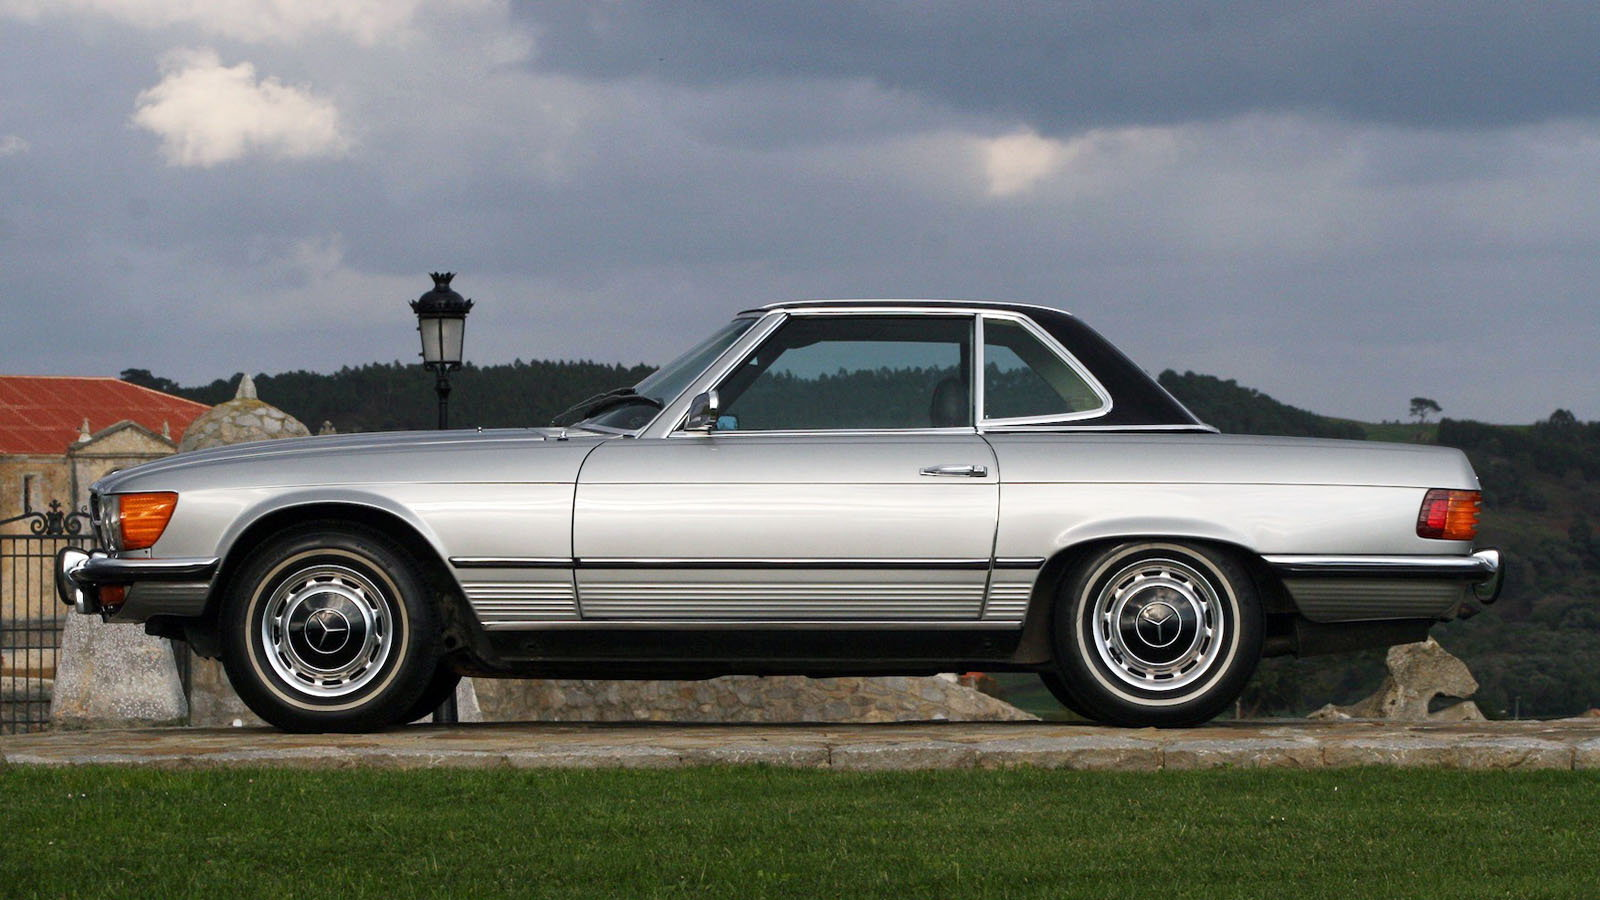 350SL Roadster at CrossCause